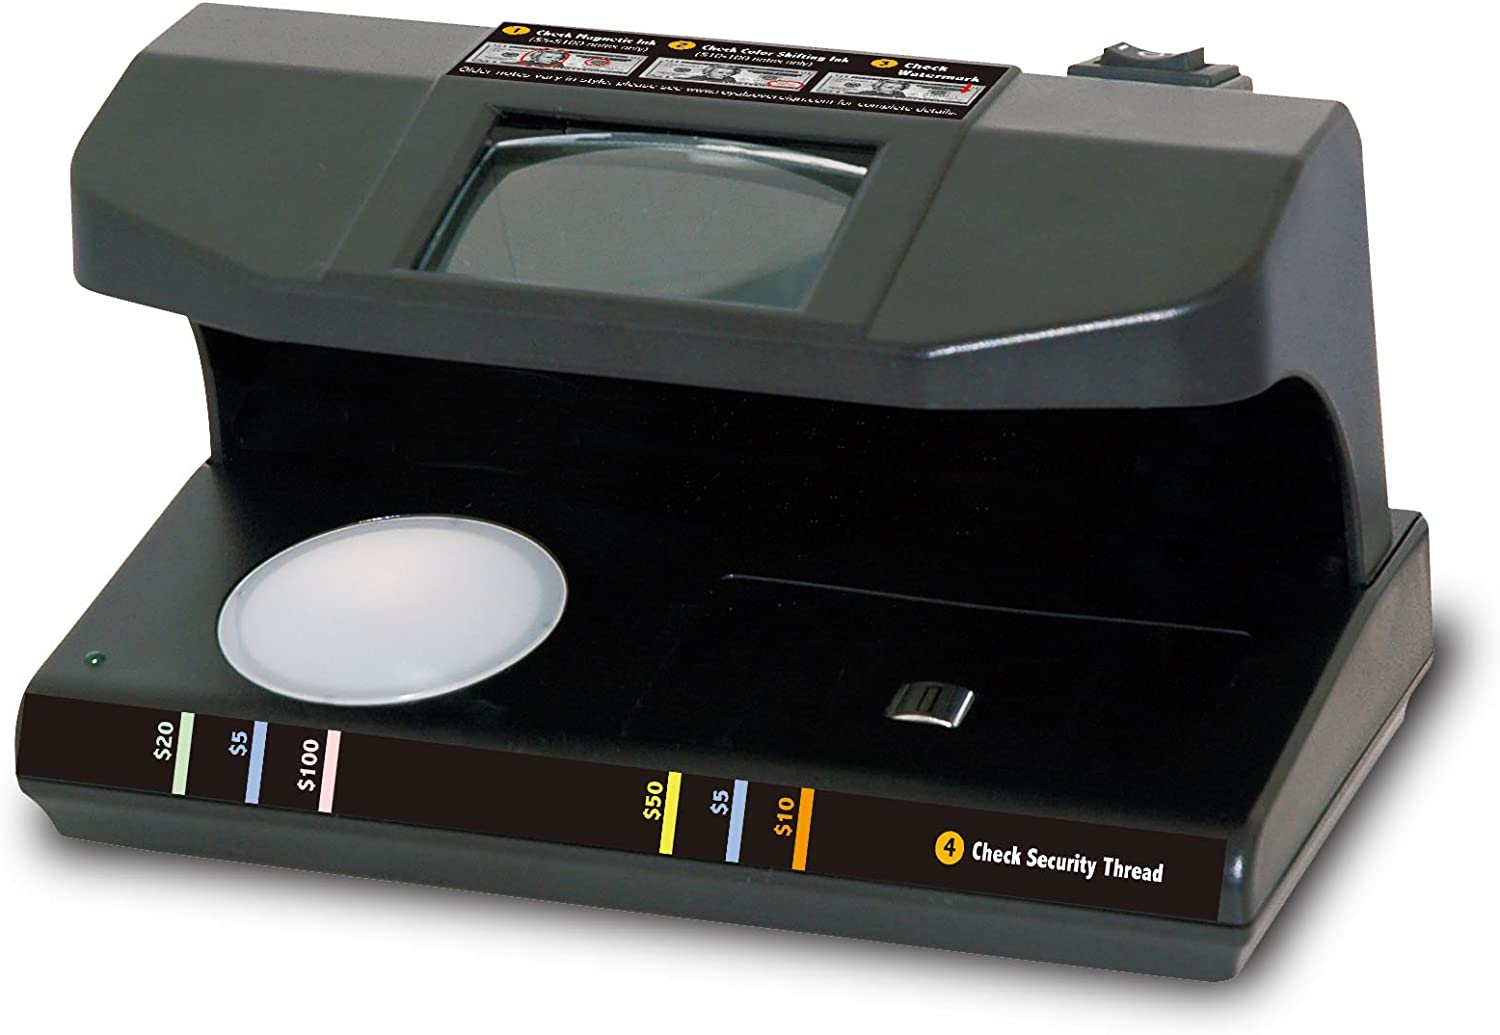 Royal Sovereign 4-Way Counterfeit Detector, Ultraviolet, Magnetic, Watermark, and Micro-Print Counterfeit Detection(RCD-3PLUS)